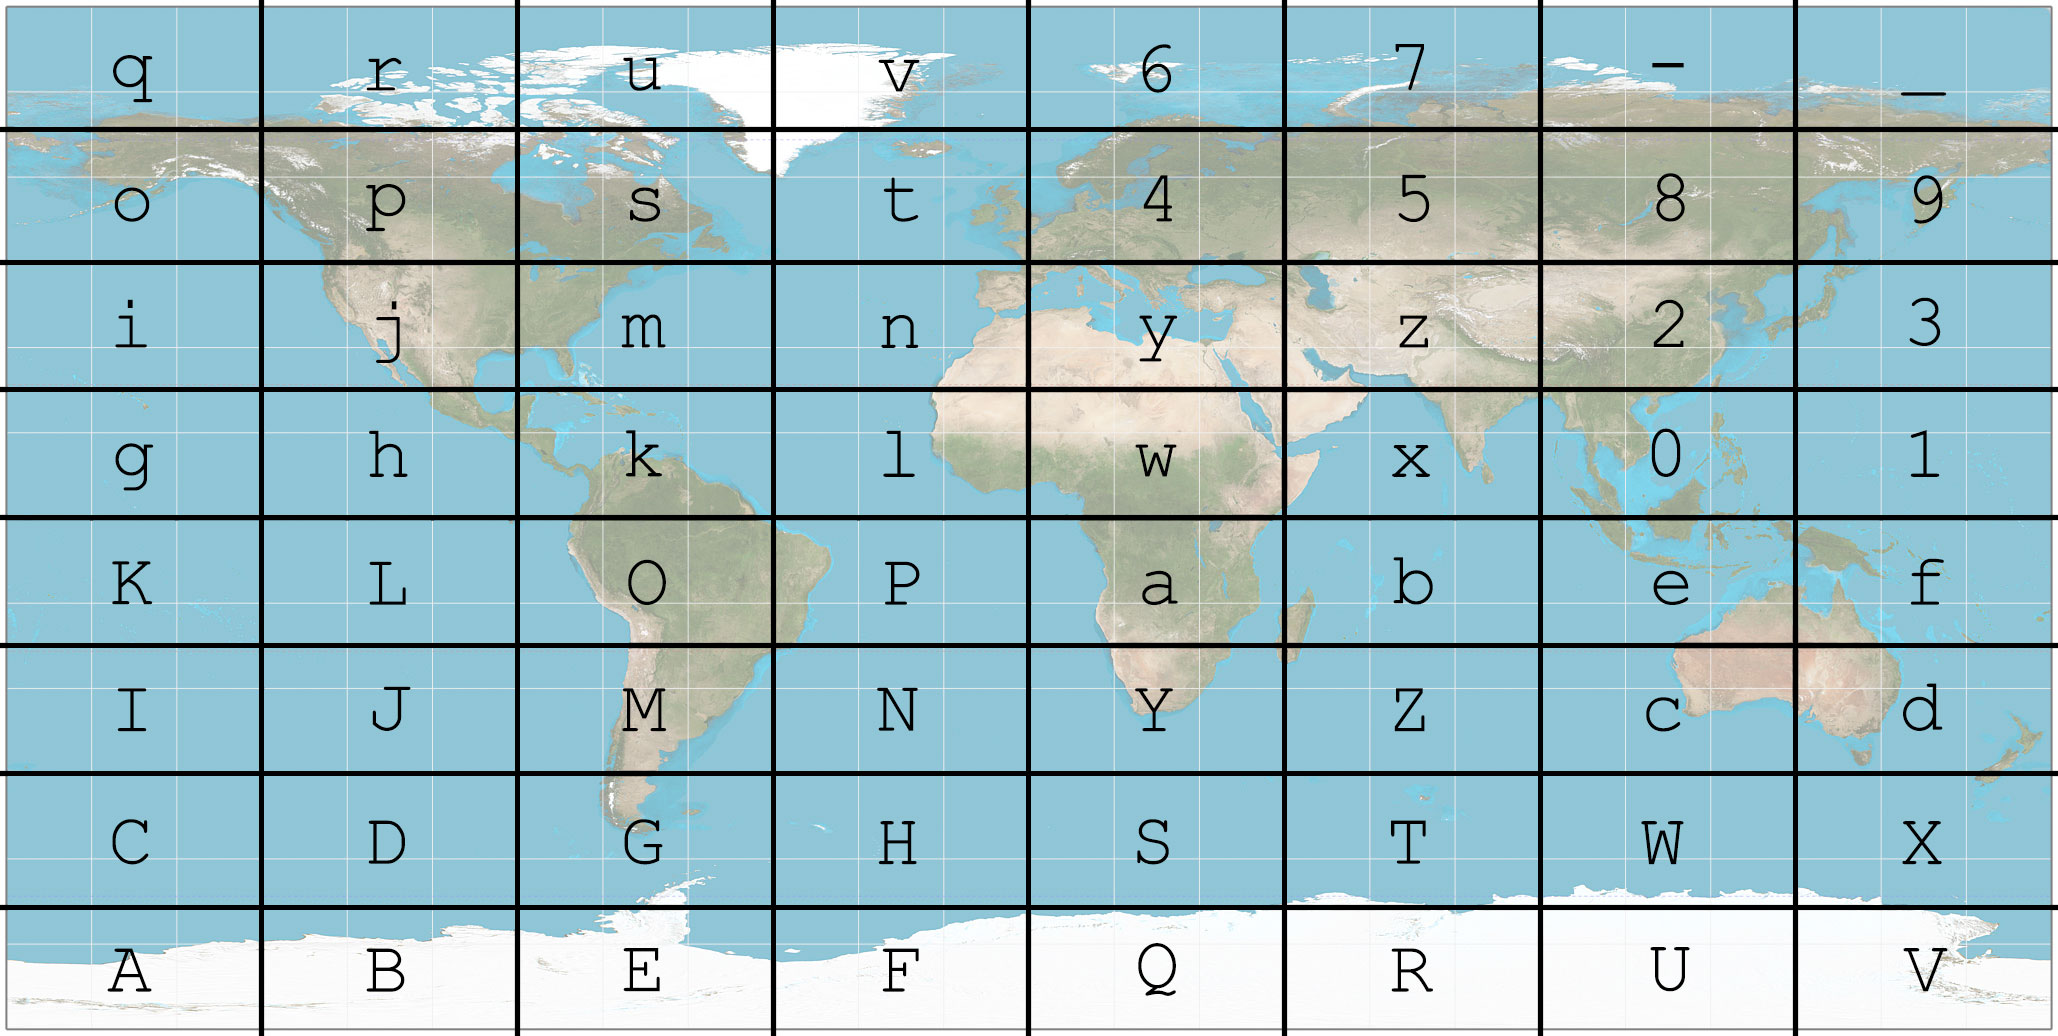 The L64 grid on a world map. (Source for the map: Wikimedia)